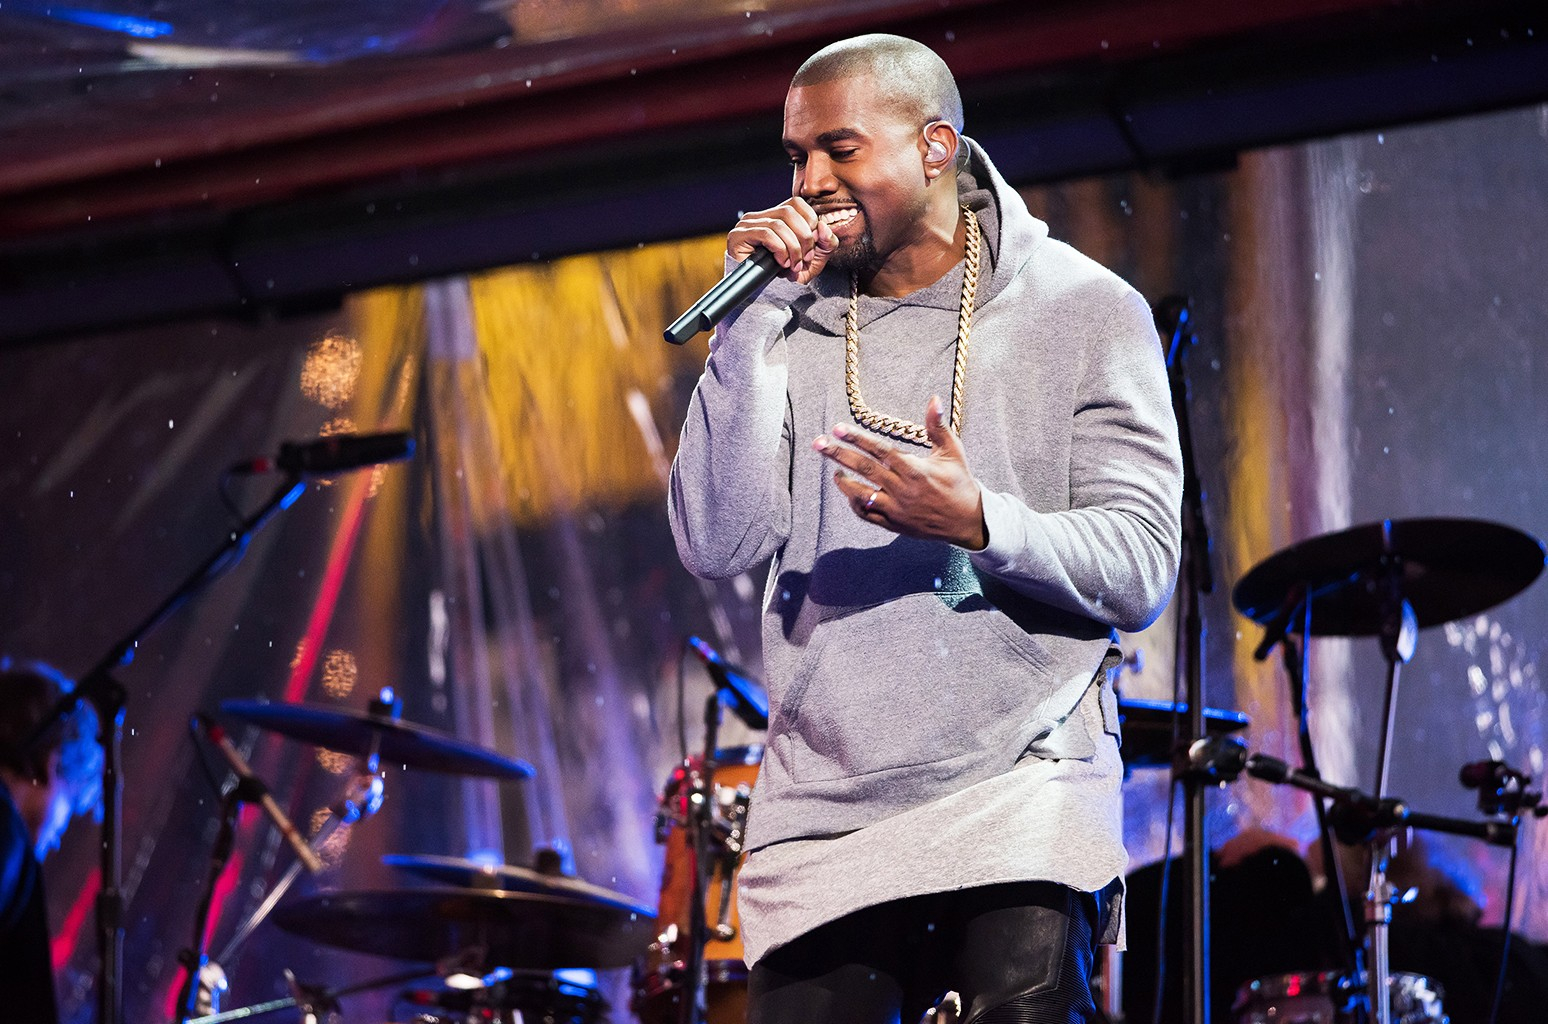 Kanye West performs during the World AIDS Day (RED) concert on Dec. 1, 2014 in New York City.